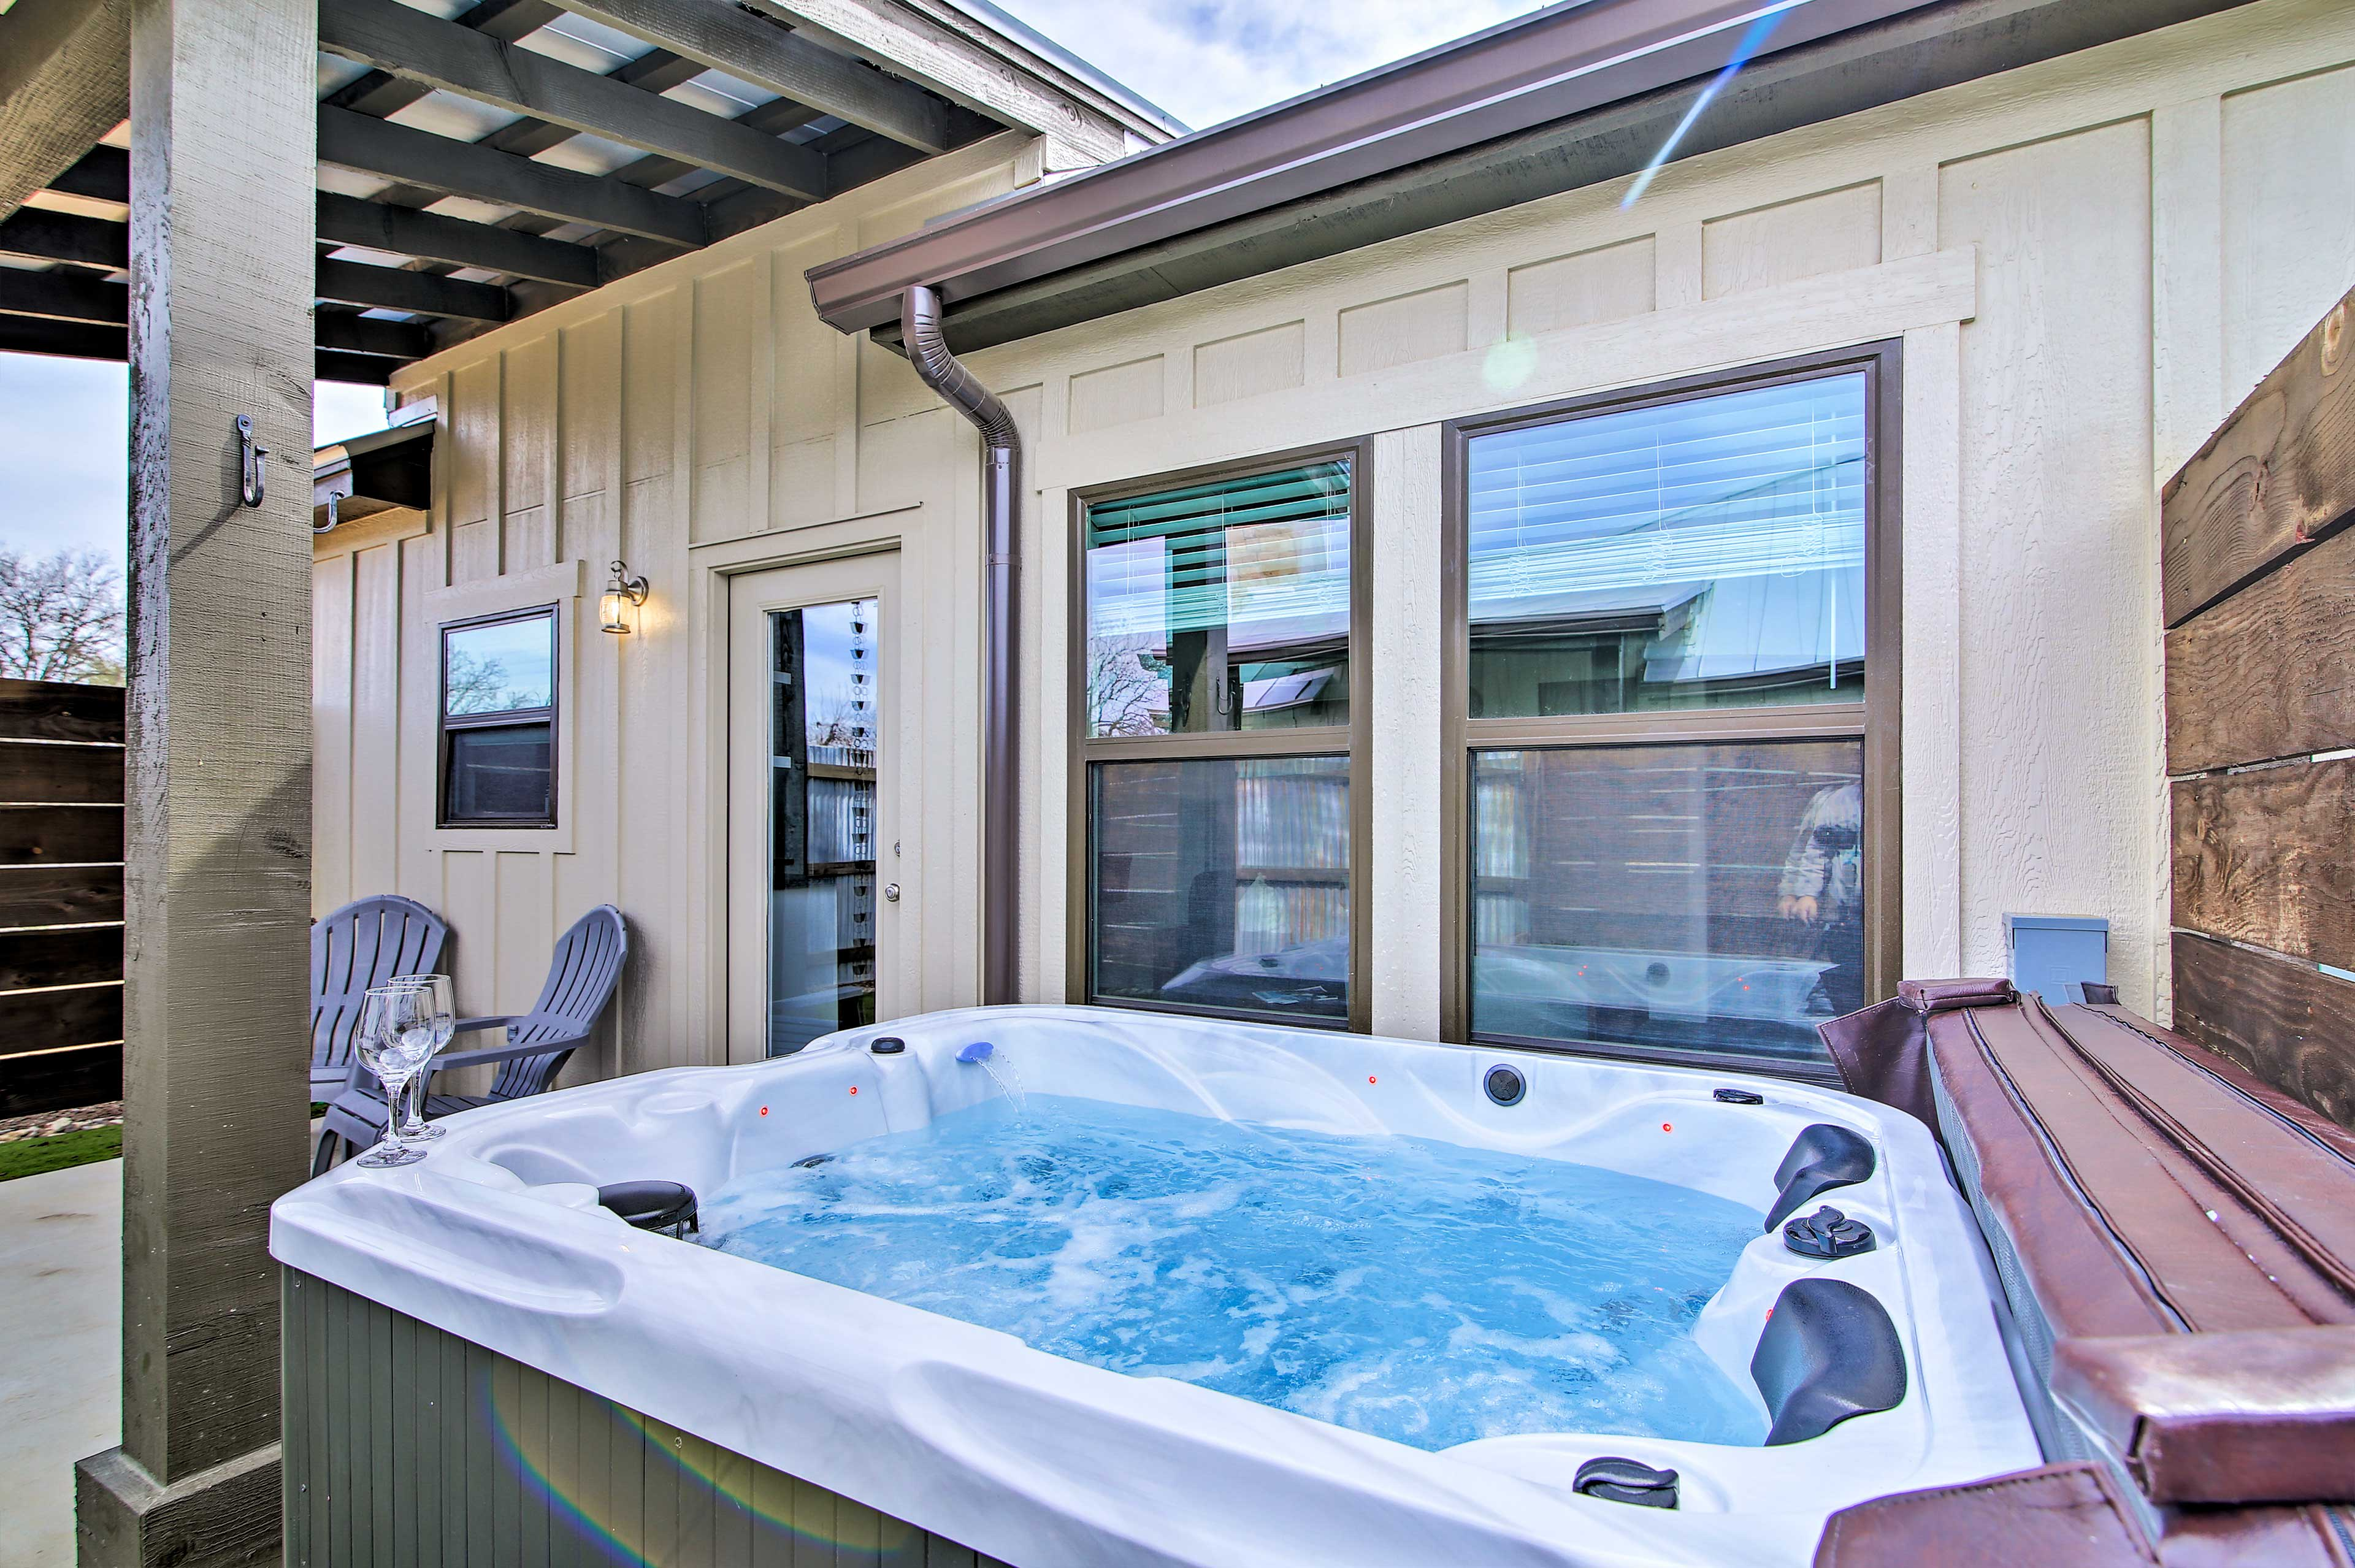 Let your worries soak away after exploring the local wineries.